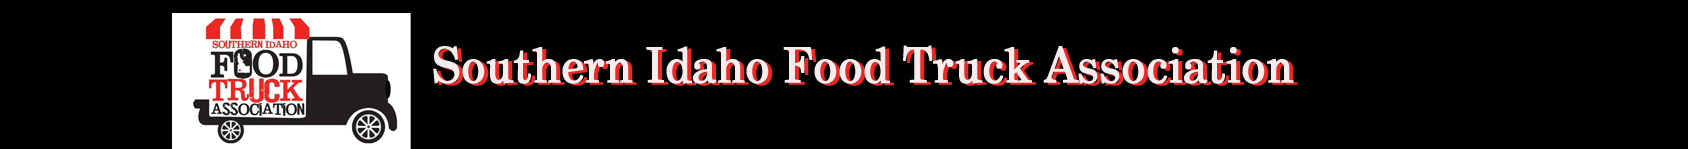 Food Trucks in Boise, Meridian, Nampa and Eagle Idaho